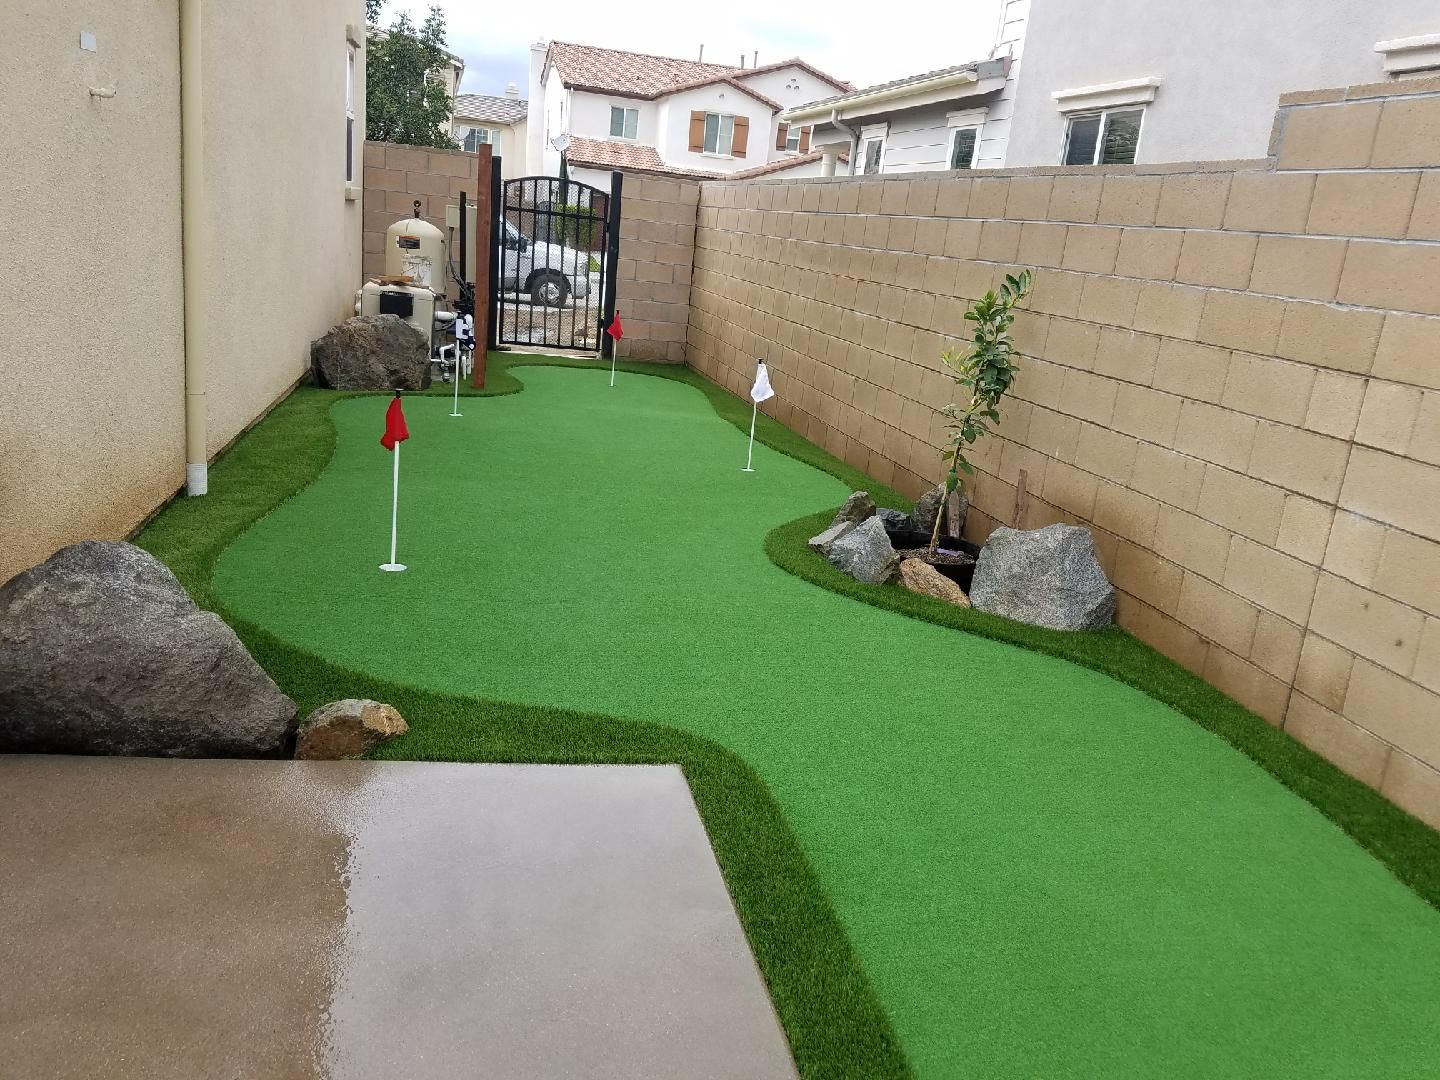 Narrow Space Putting Green Created By Tough Turtle Turf Artificial Grass Artificialgrass Tur Green Backyard Backyard Putting Green Artificial Grass Backyard